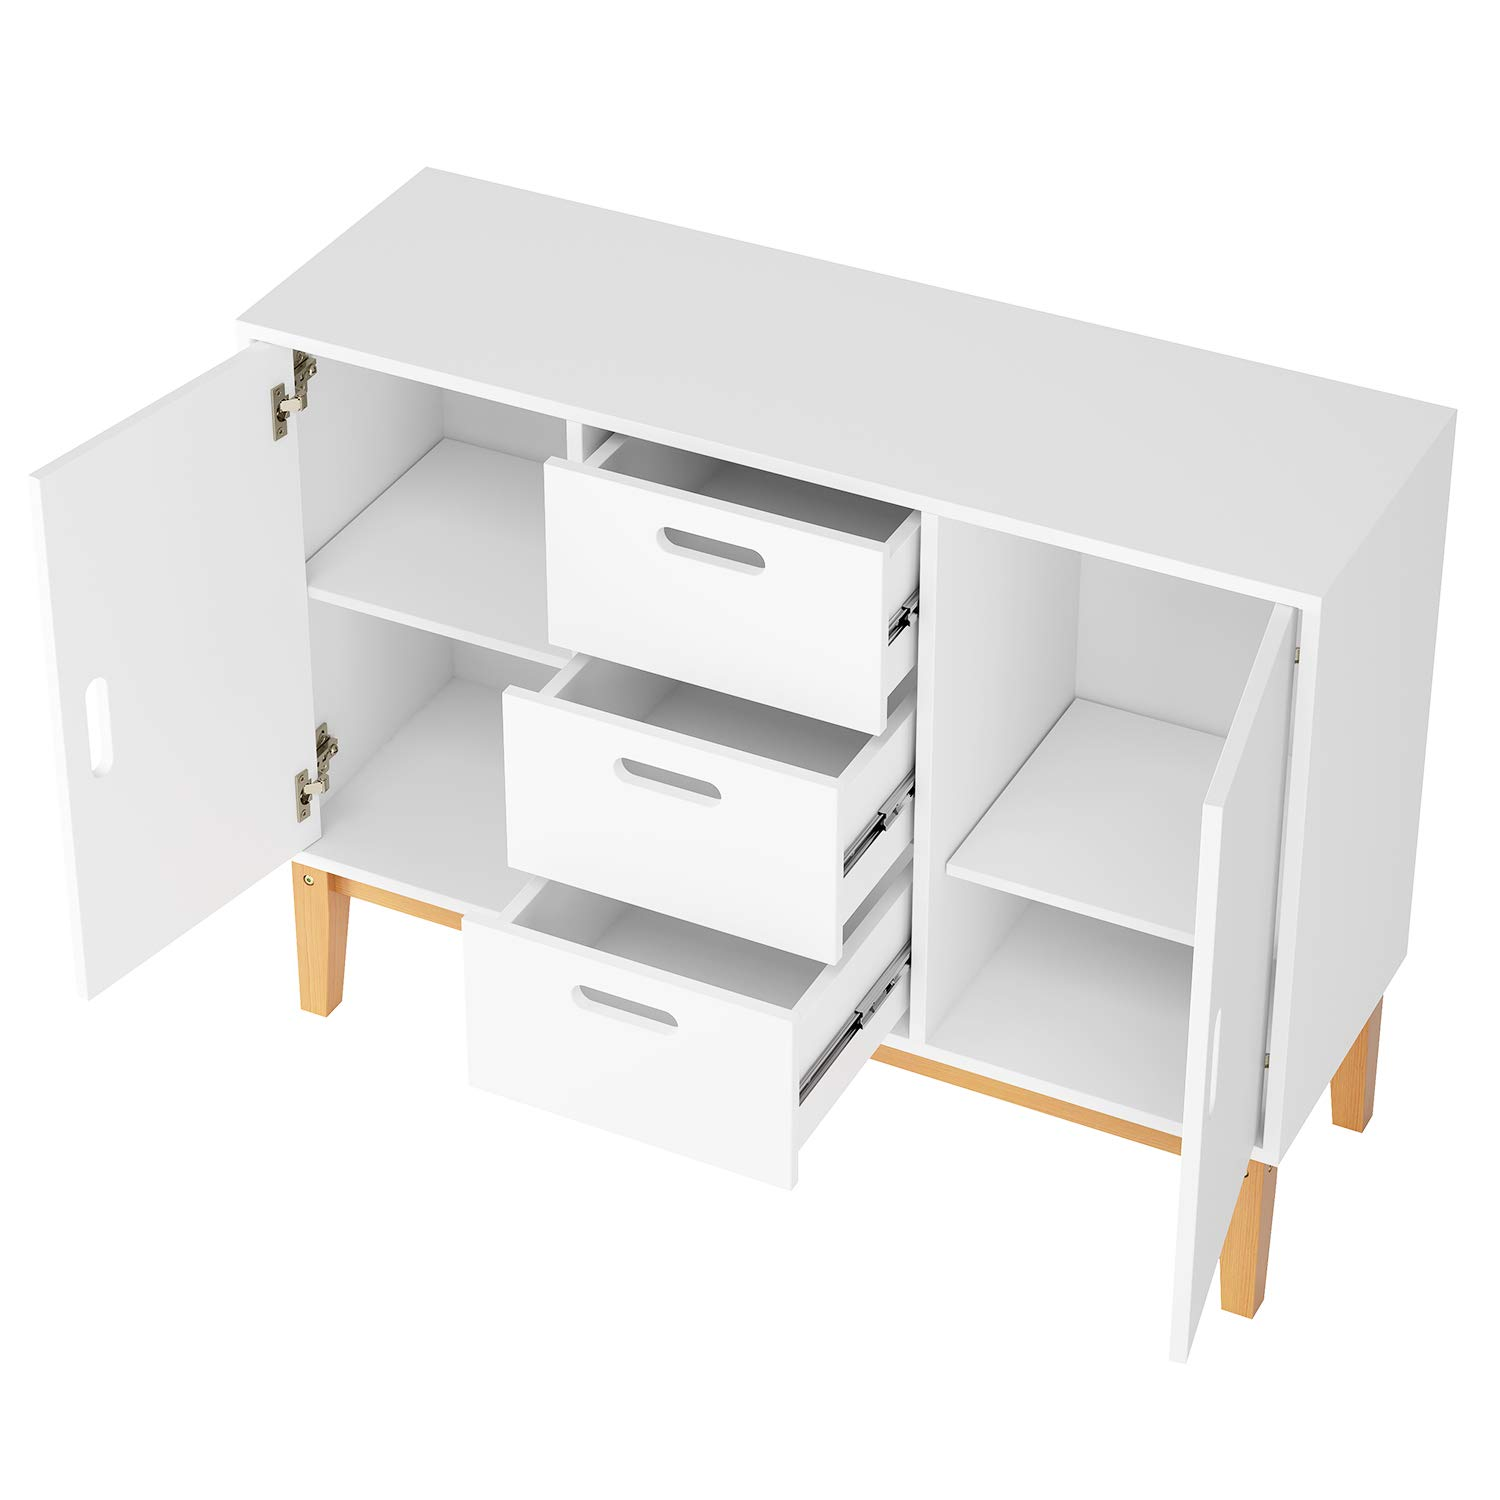 HOMECHO Floor Buffet Sideboard Storage Cabinet Freestanding Console Table Cupboard Chest 2 Door, 3 Drawers and 2 Inside Adjustment Shelf for Hallway, Living Room and Kitchen White Color HMC-MD-004 by HOMECHO (Image #8)